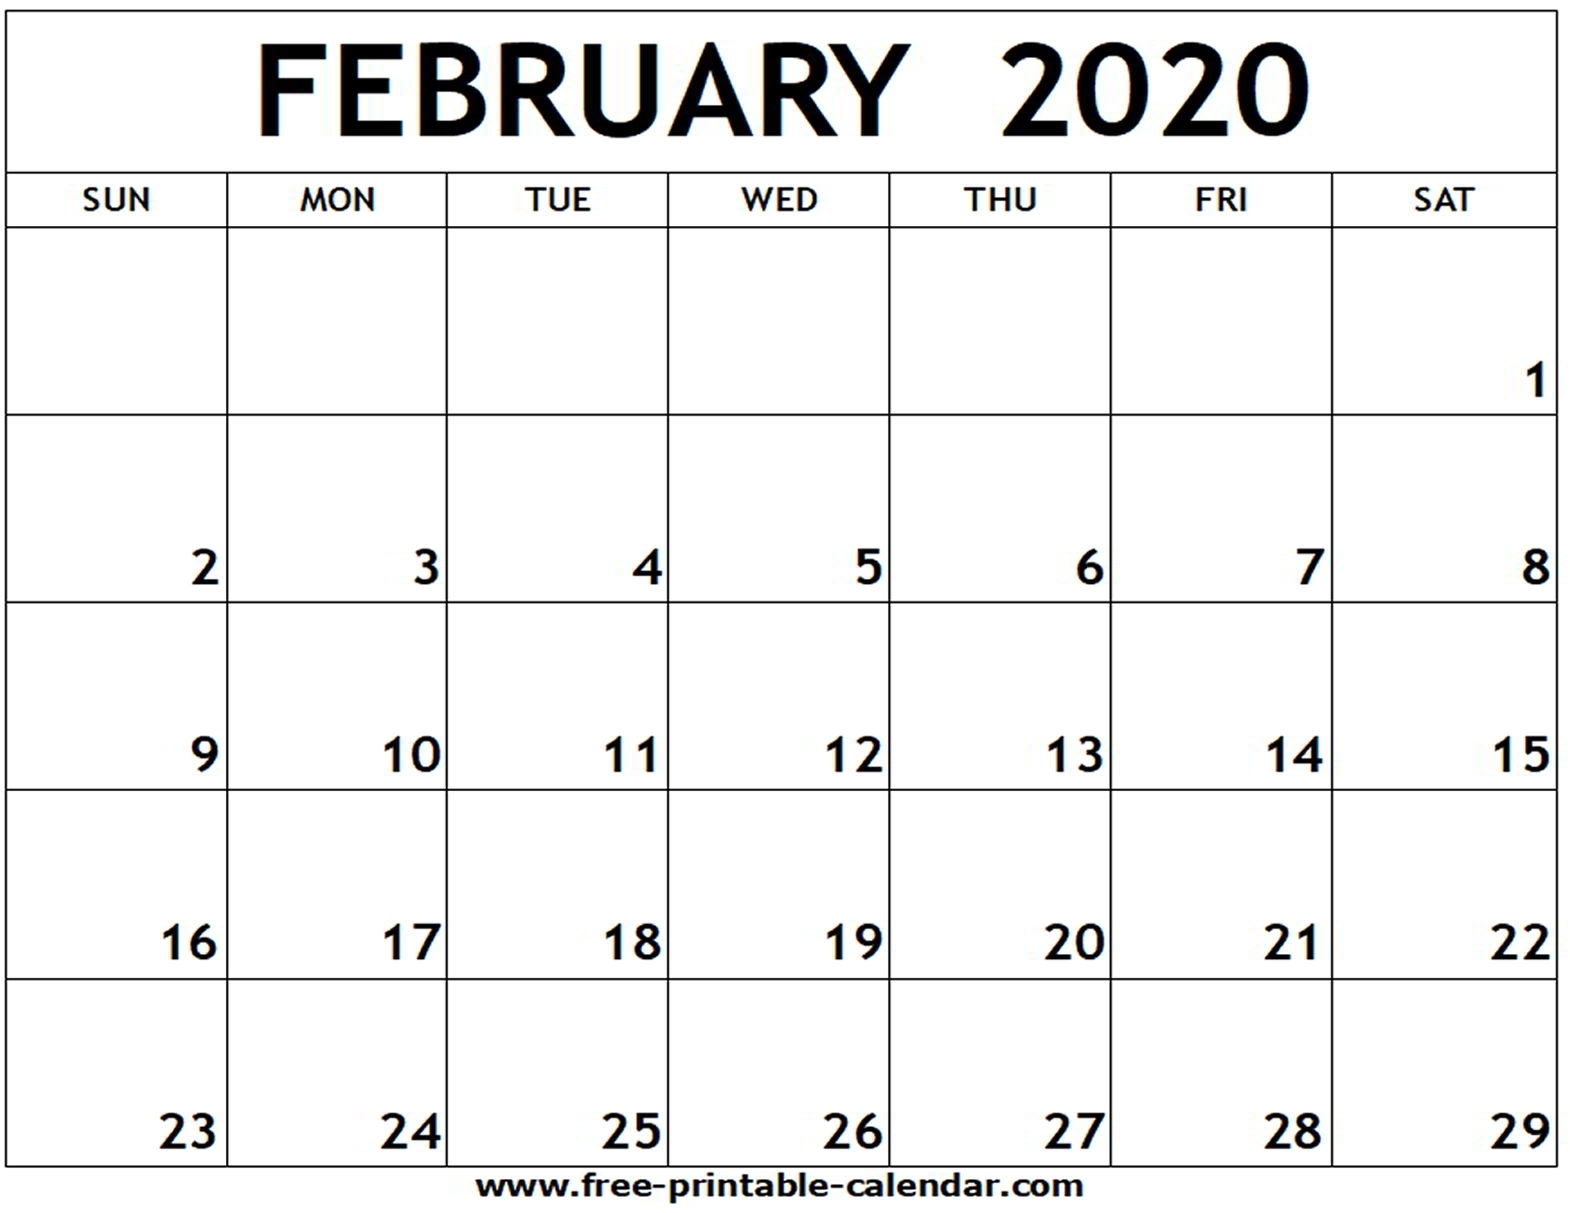 February 2020 Printable Calendar - Free-Printable-Calendar throughout 2020 Free Printable Calendars Without Downloading